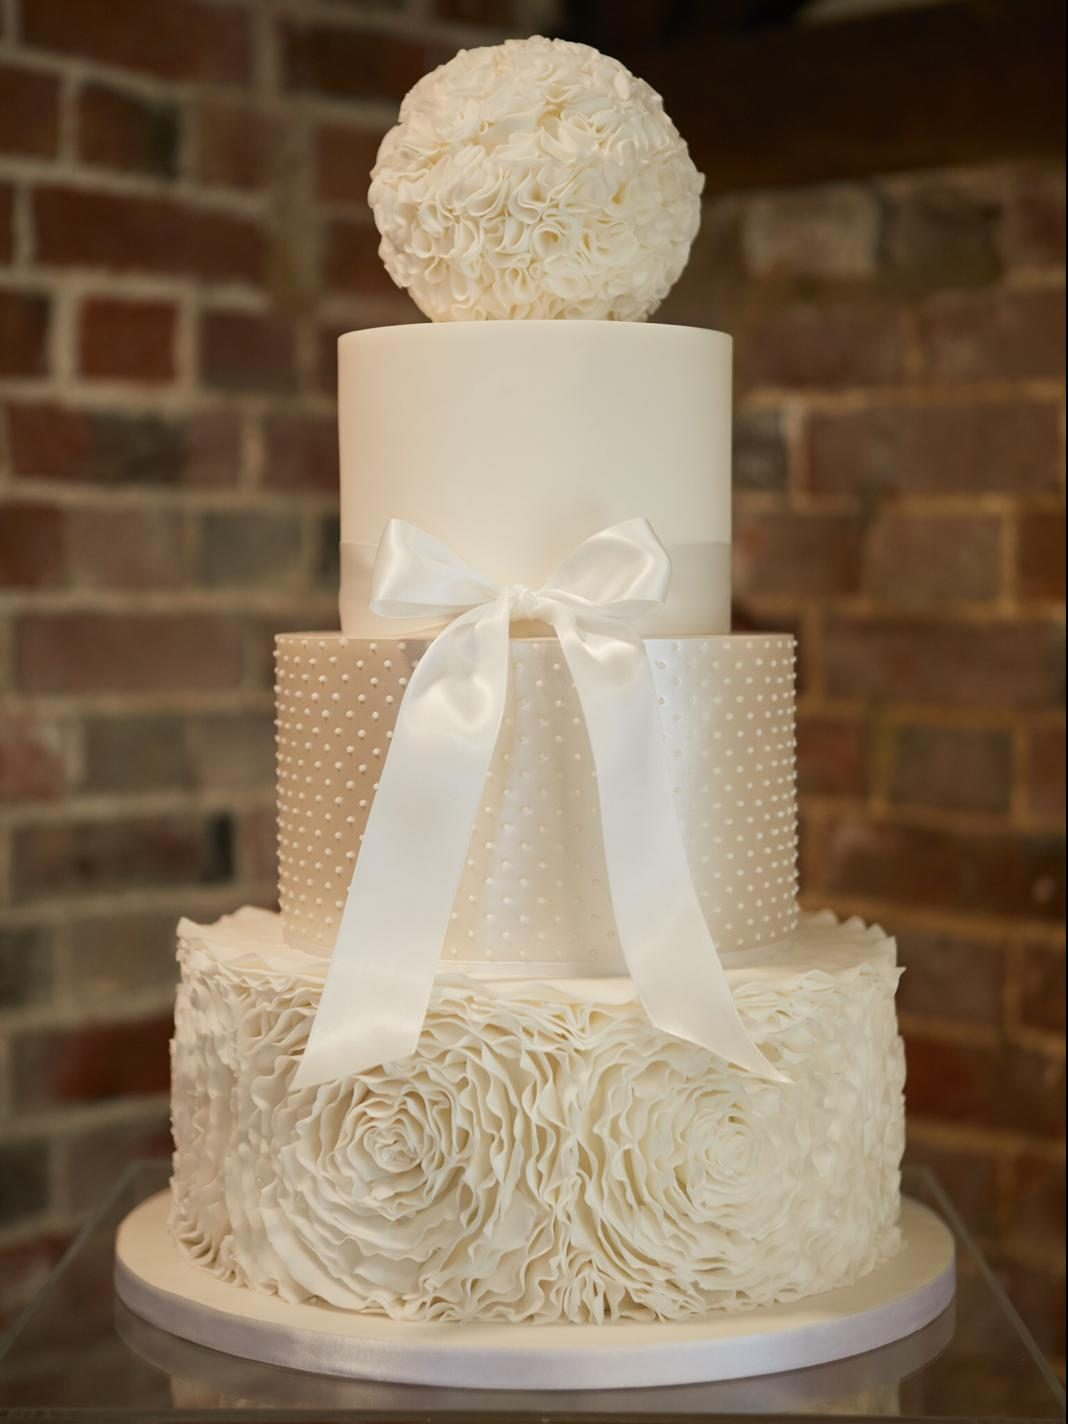 All white wedding cake white ruffles, pearl lustre shimmer, ruffle ball topper, essex wedding cake Gaynes Park